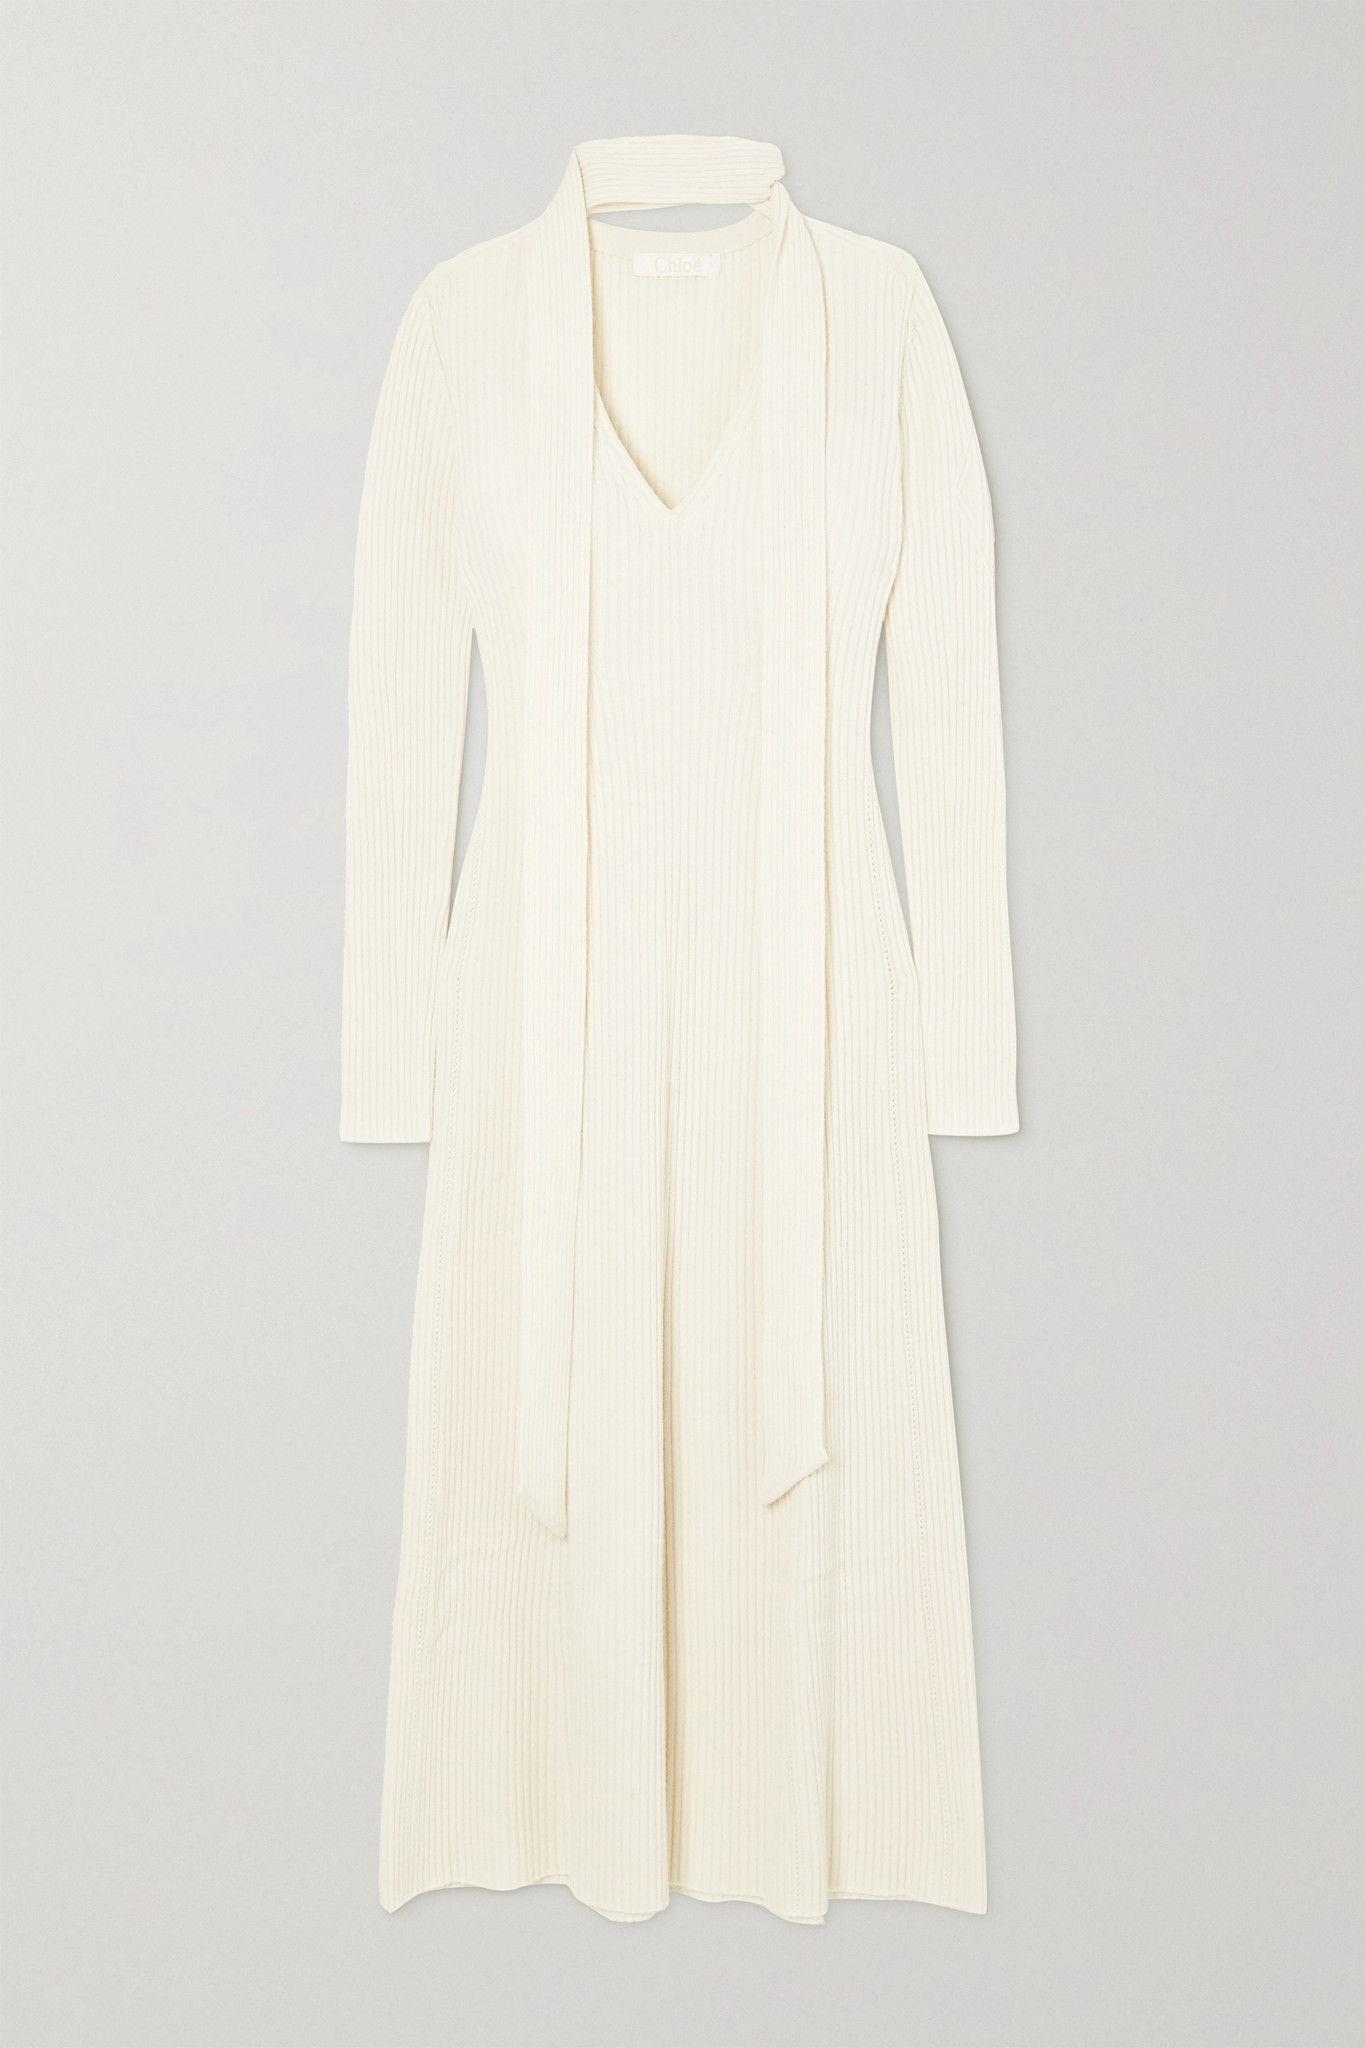 CHLOÉ - Tie-neck Ribbed Wool And Silk-blend Midi Dress - White - small